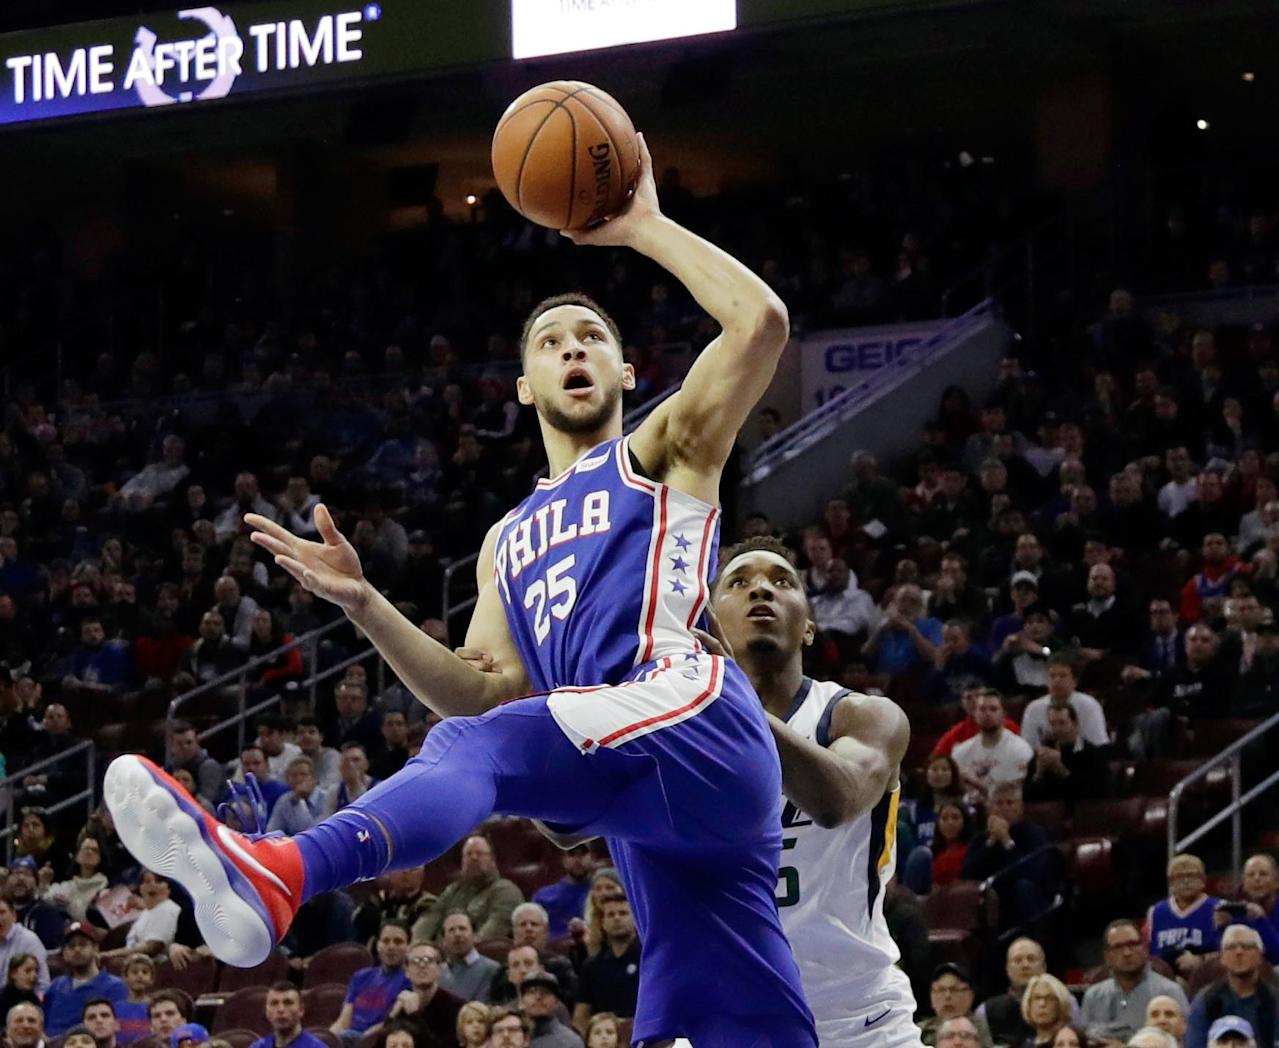 f15302d42 Does Ben Simmons  100 percent  deserve Rookie of the Year over Donovan  Mitchell